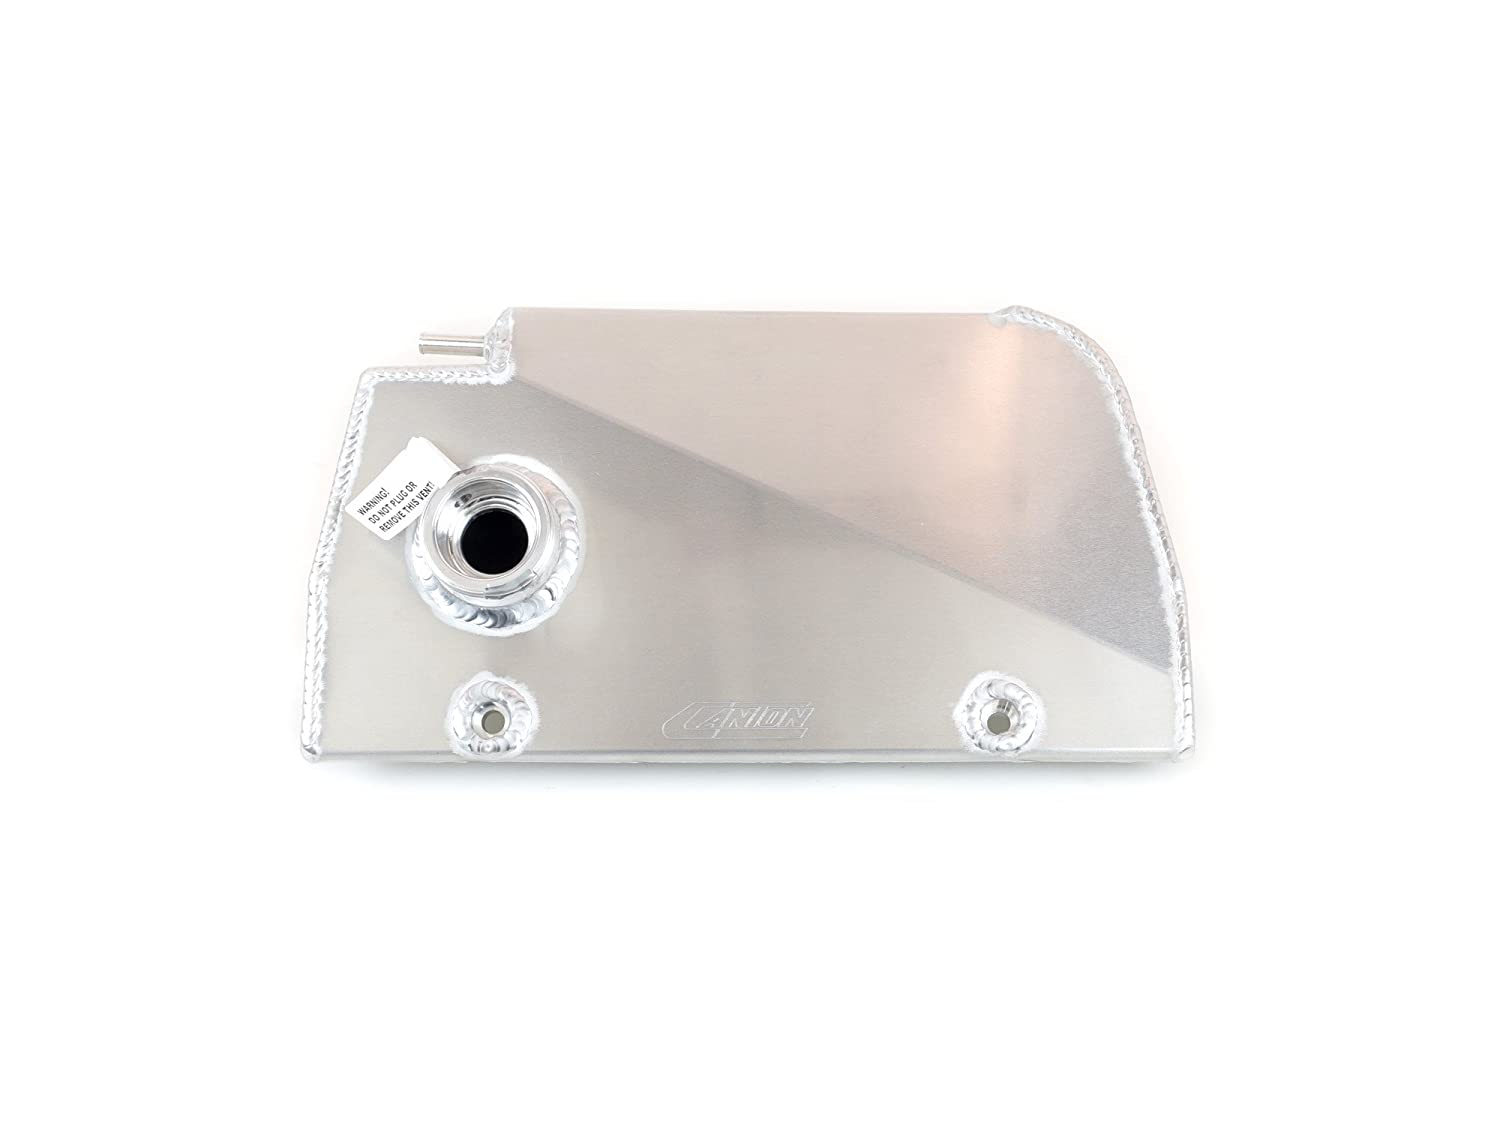 Canton Racing 80-225 Aluminum Expansion Tank for 1997-2004 Corvette Canton Racing Products